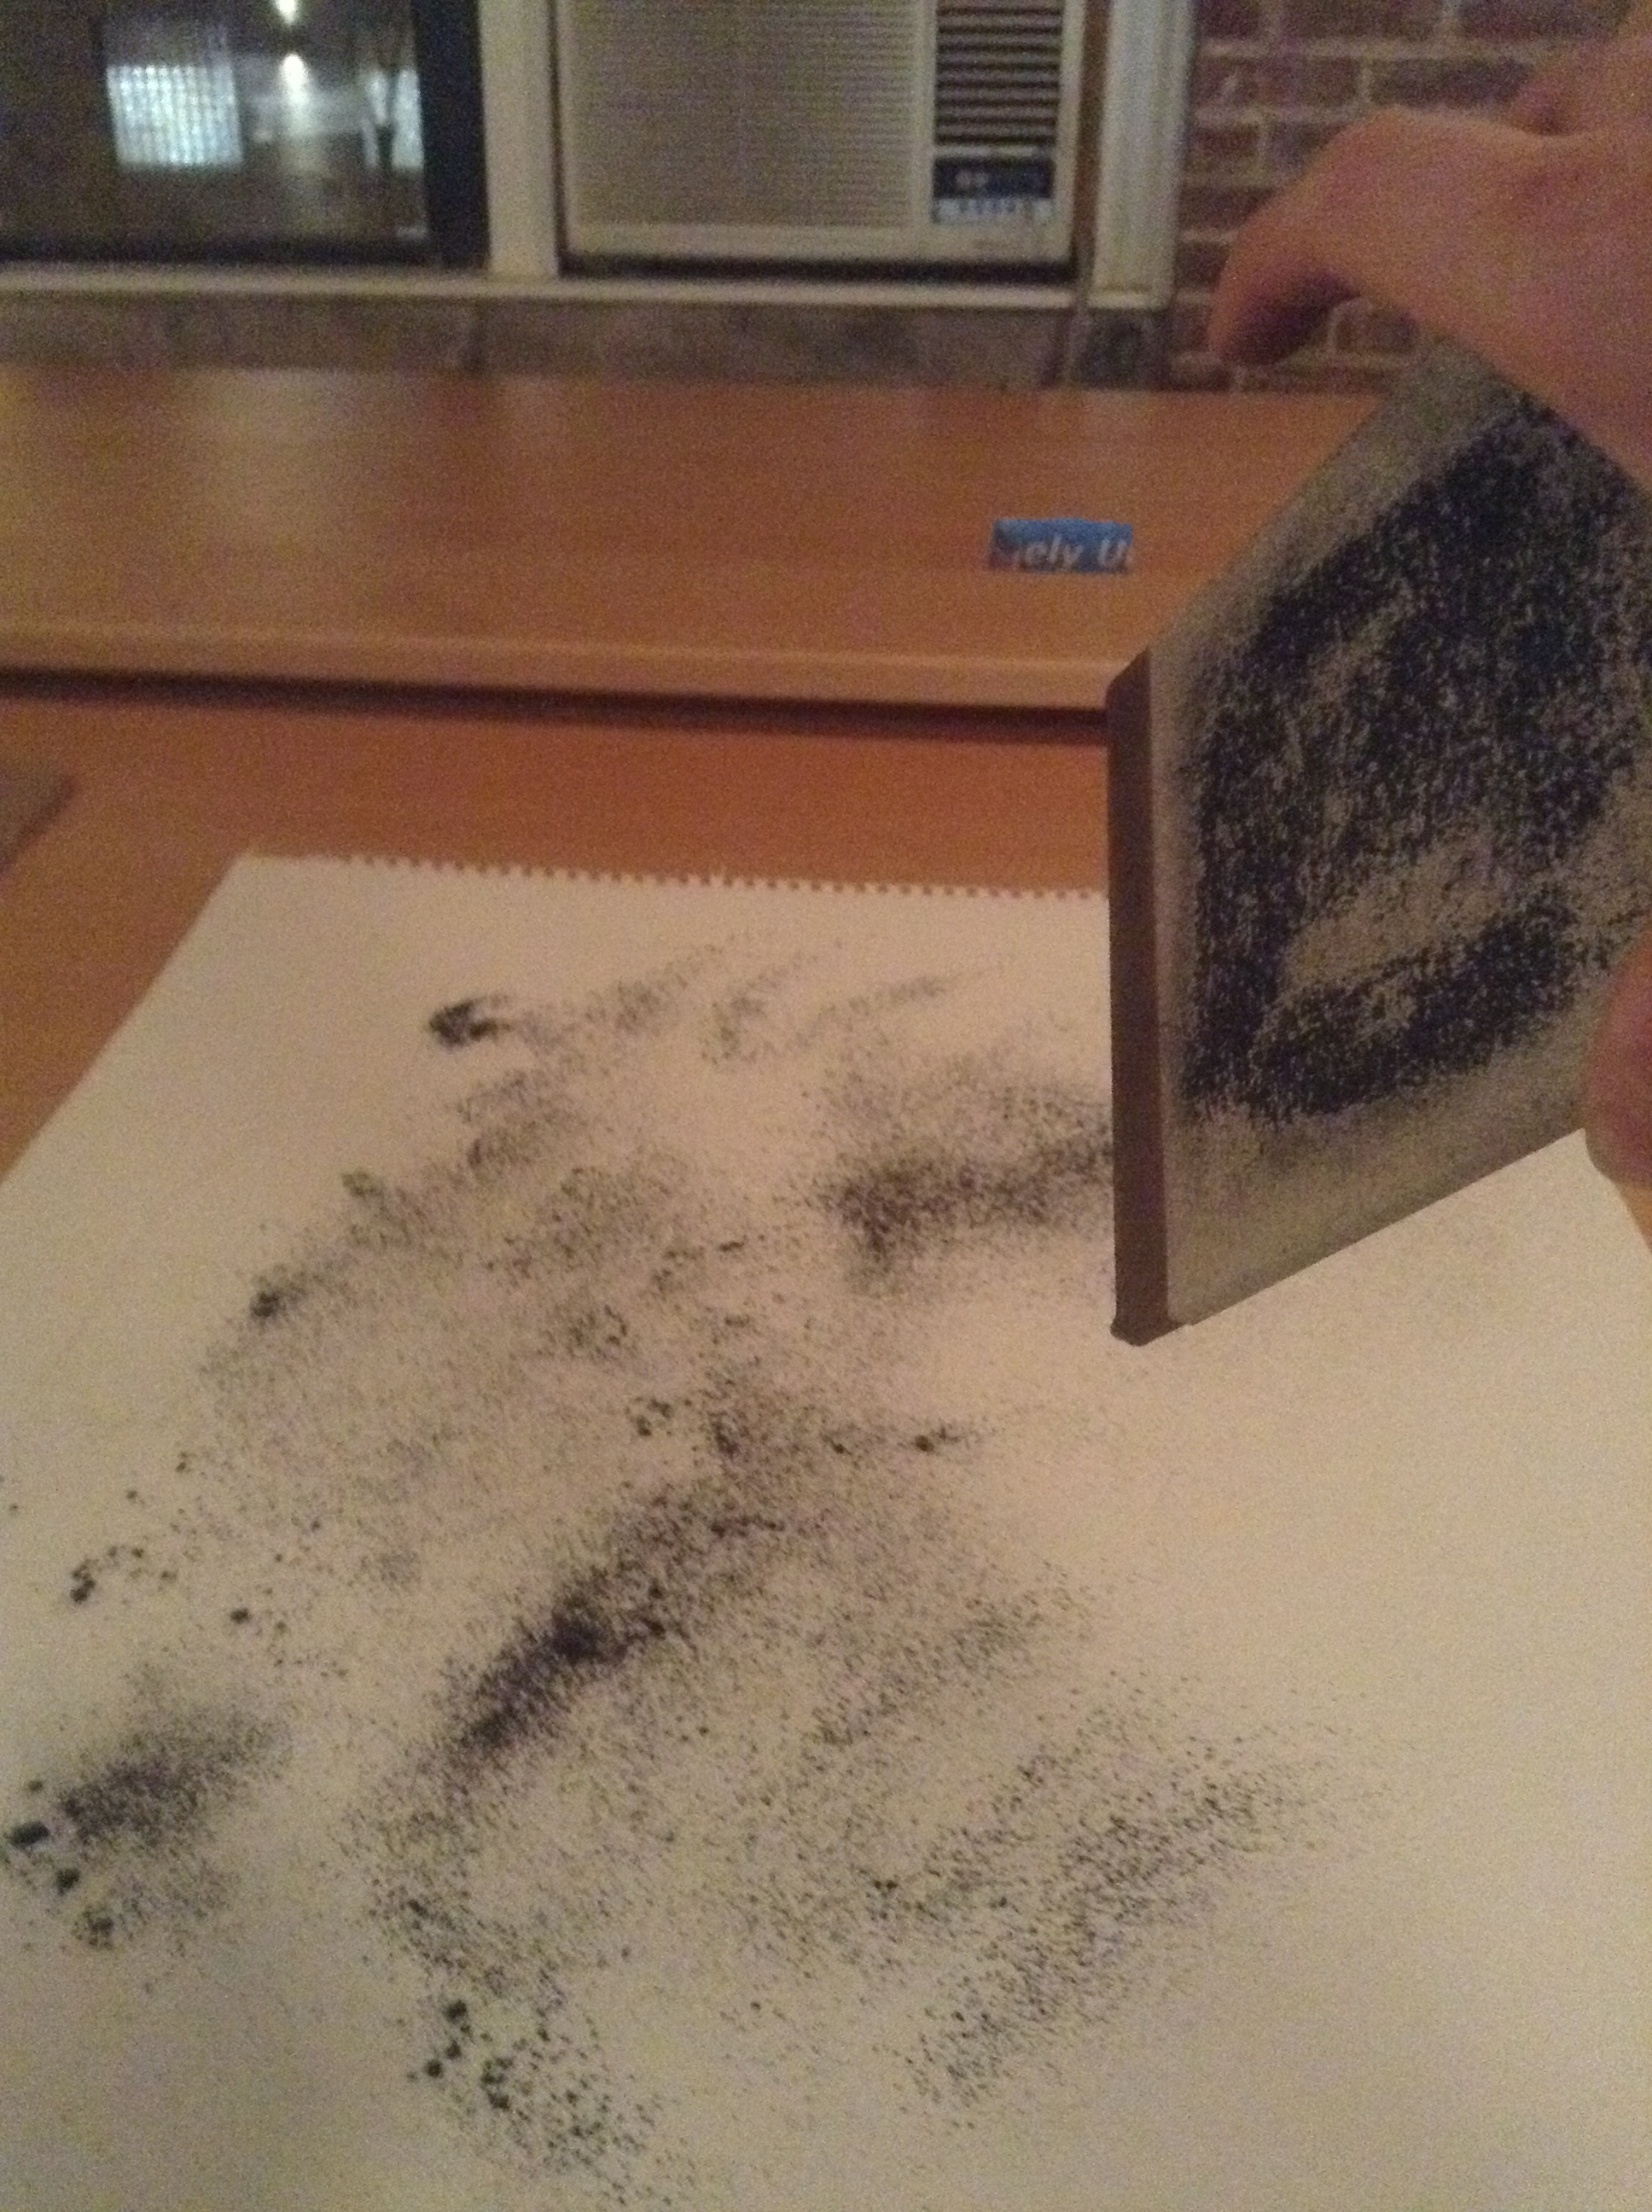 Shaking the graphite powder onto the back of the drawing.